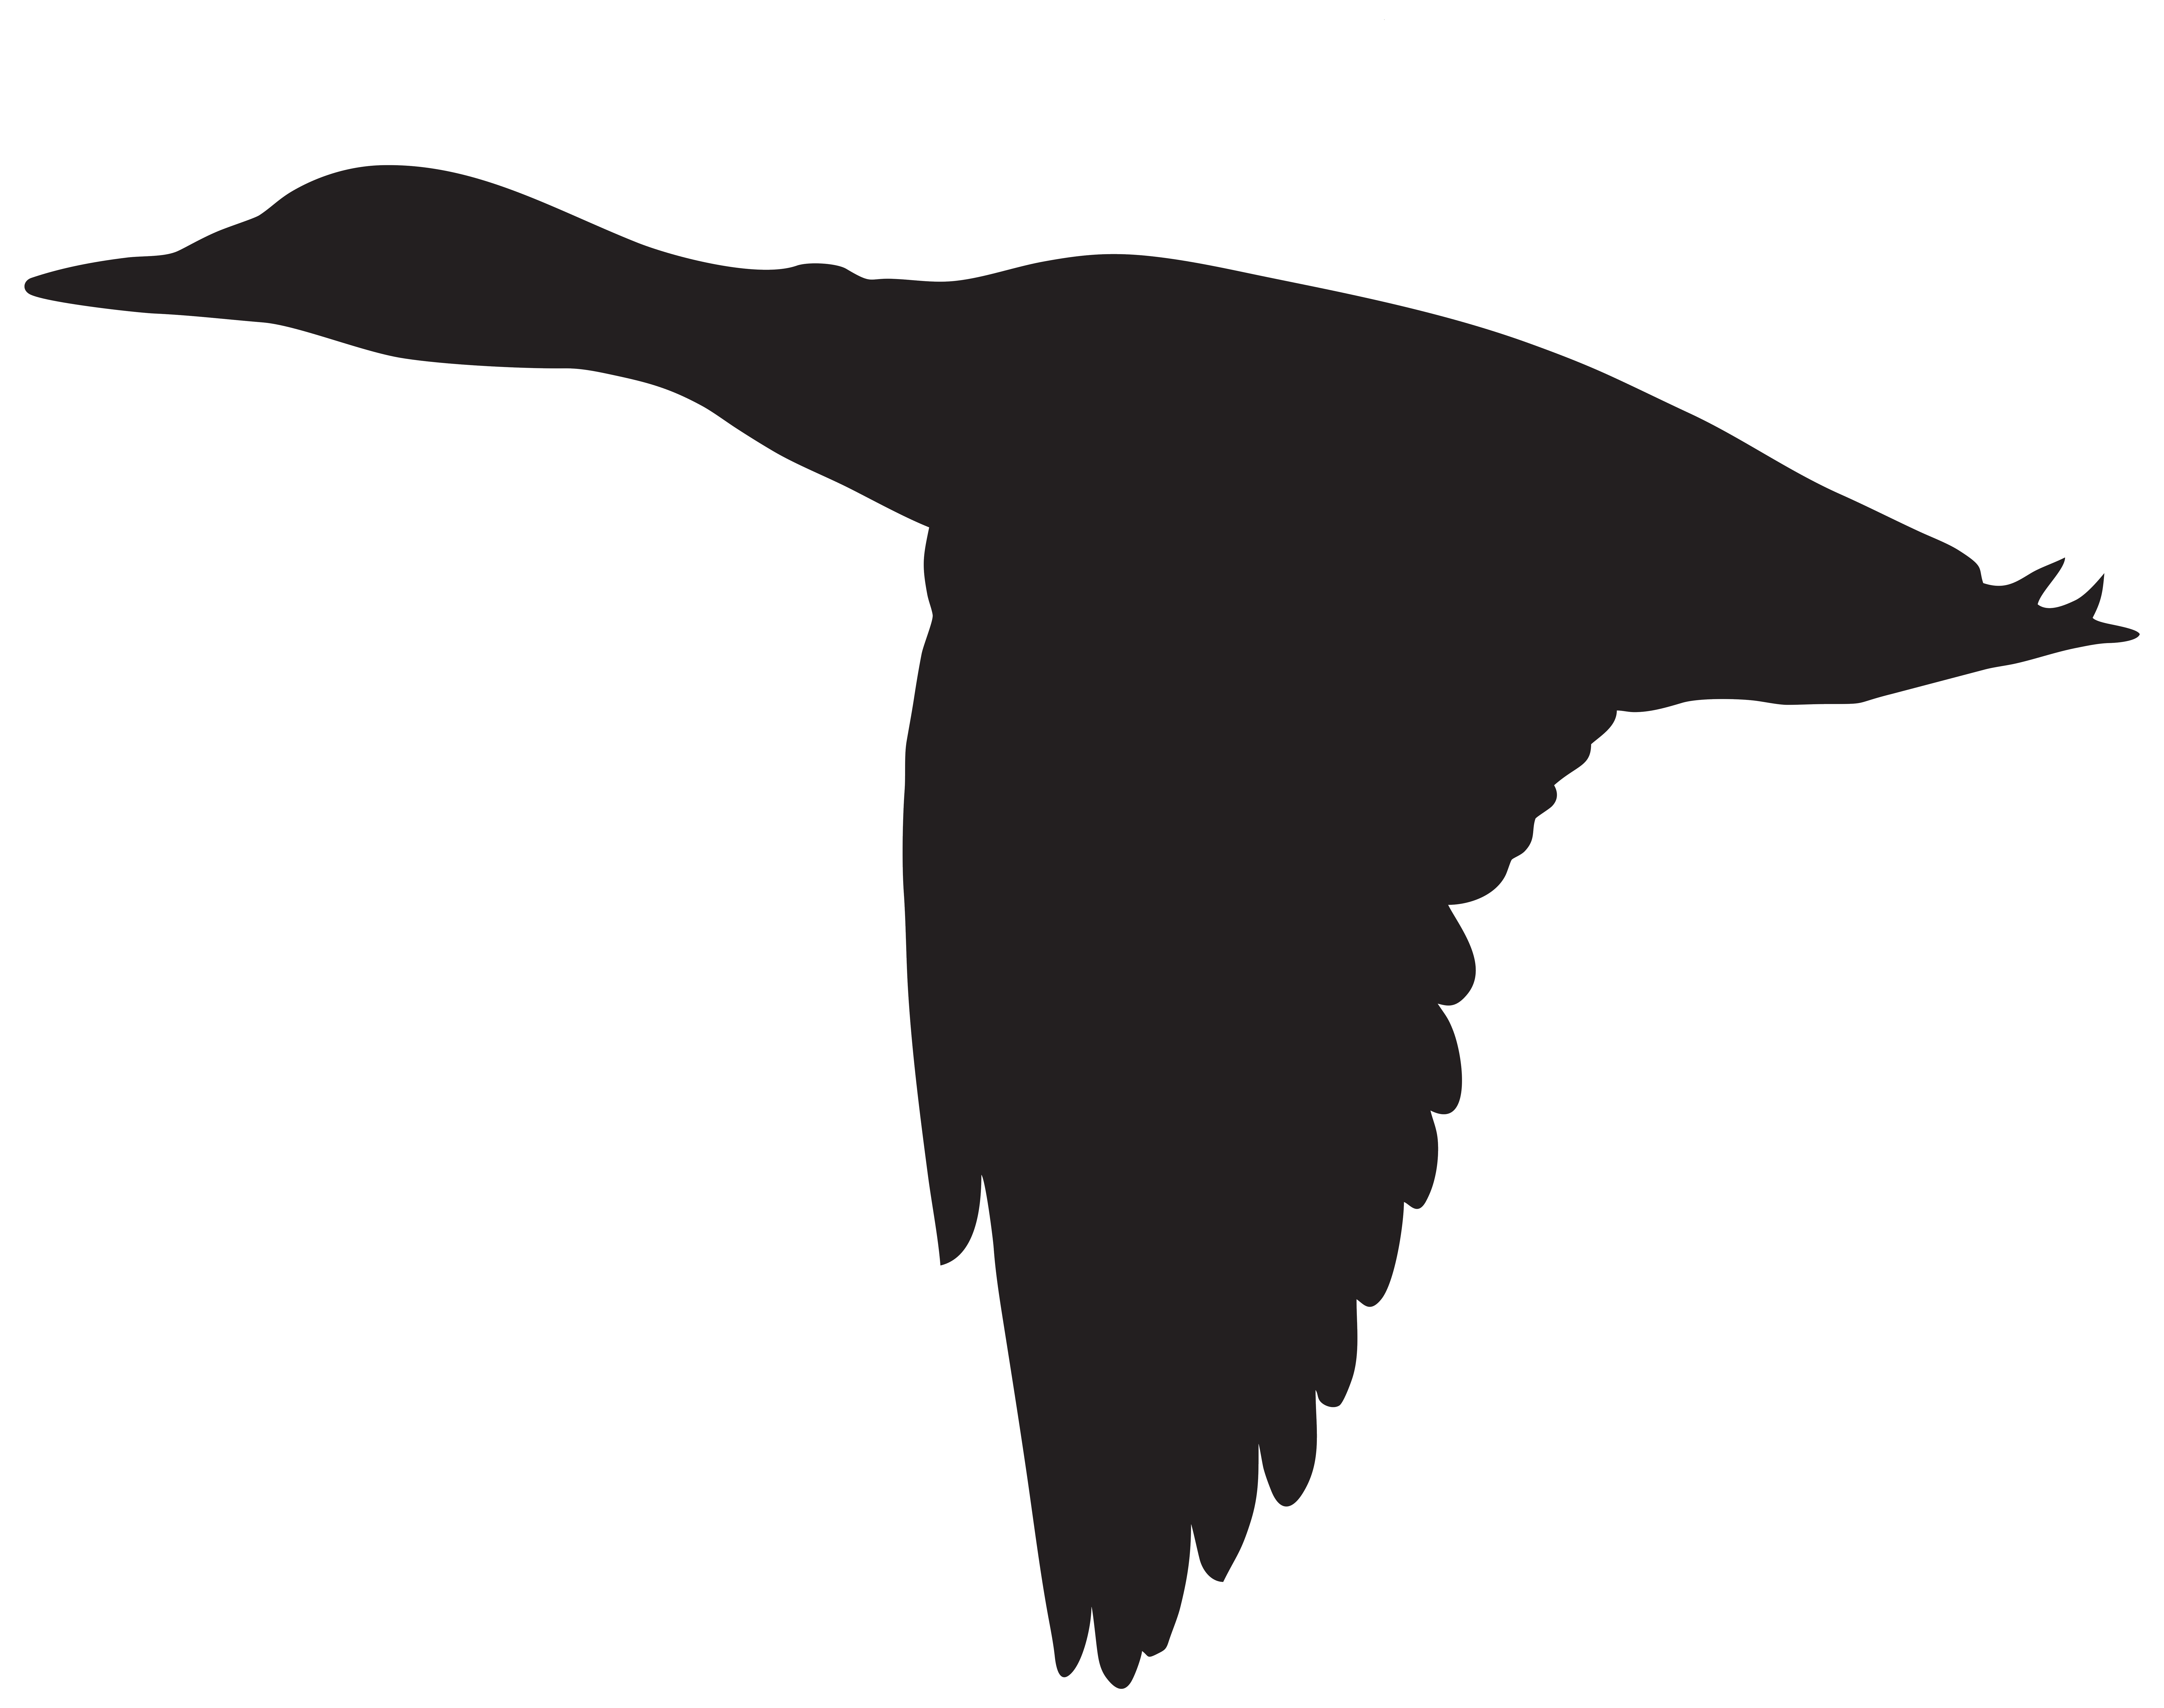 8000x6316 Duck Flying Silhouette Png Clip Art Imageu200b Gallery Yopriceville